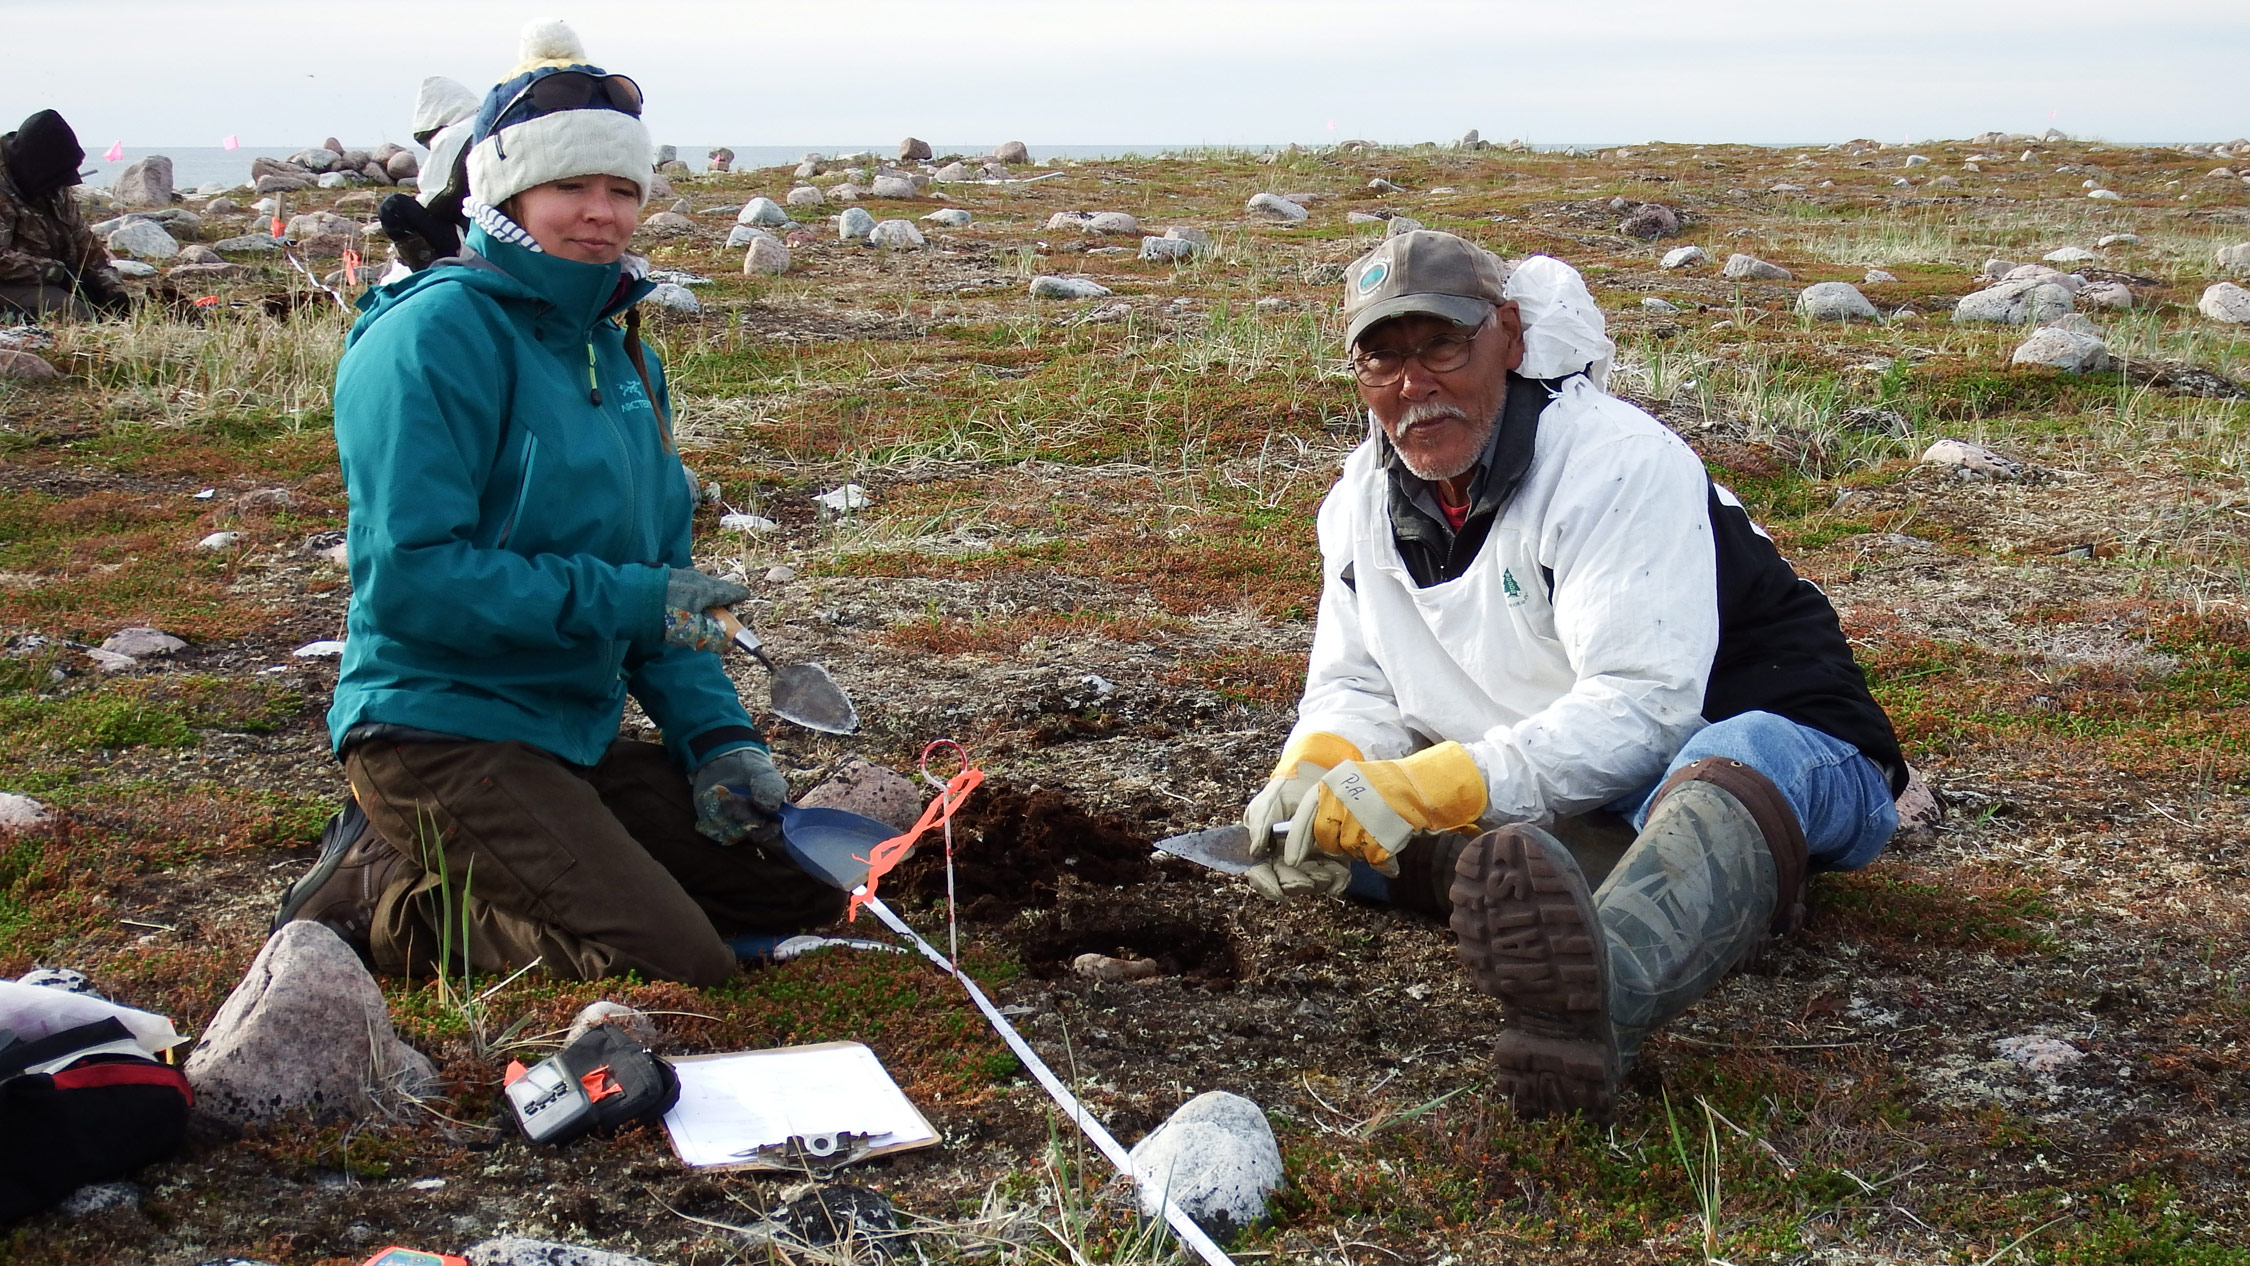 Kristin Westdal, a marine biologist with Oceans North Canada, conducts a shovel test with Peter Alareak of Arviat, Nunavut.